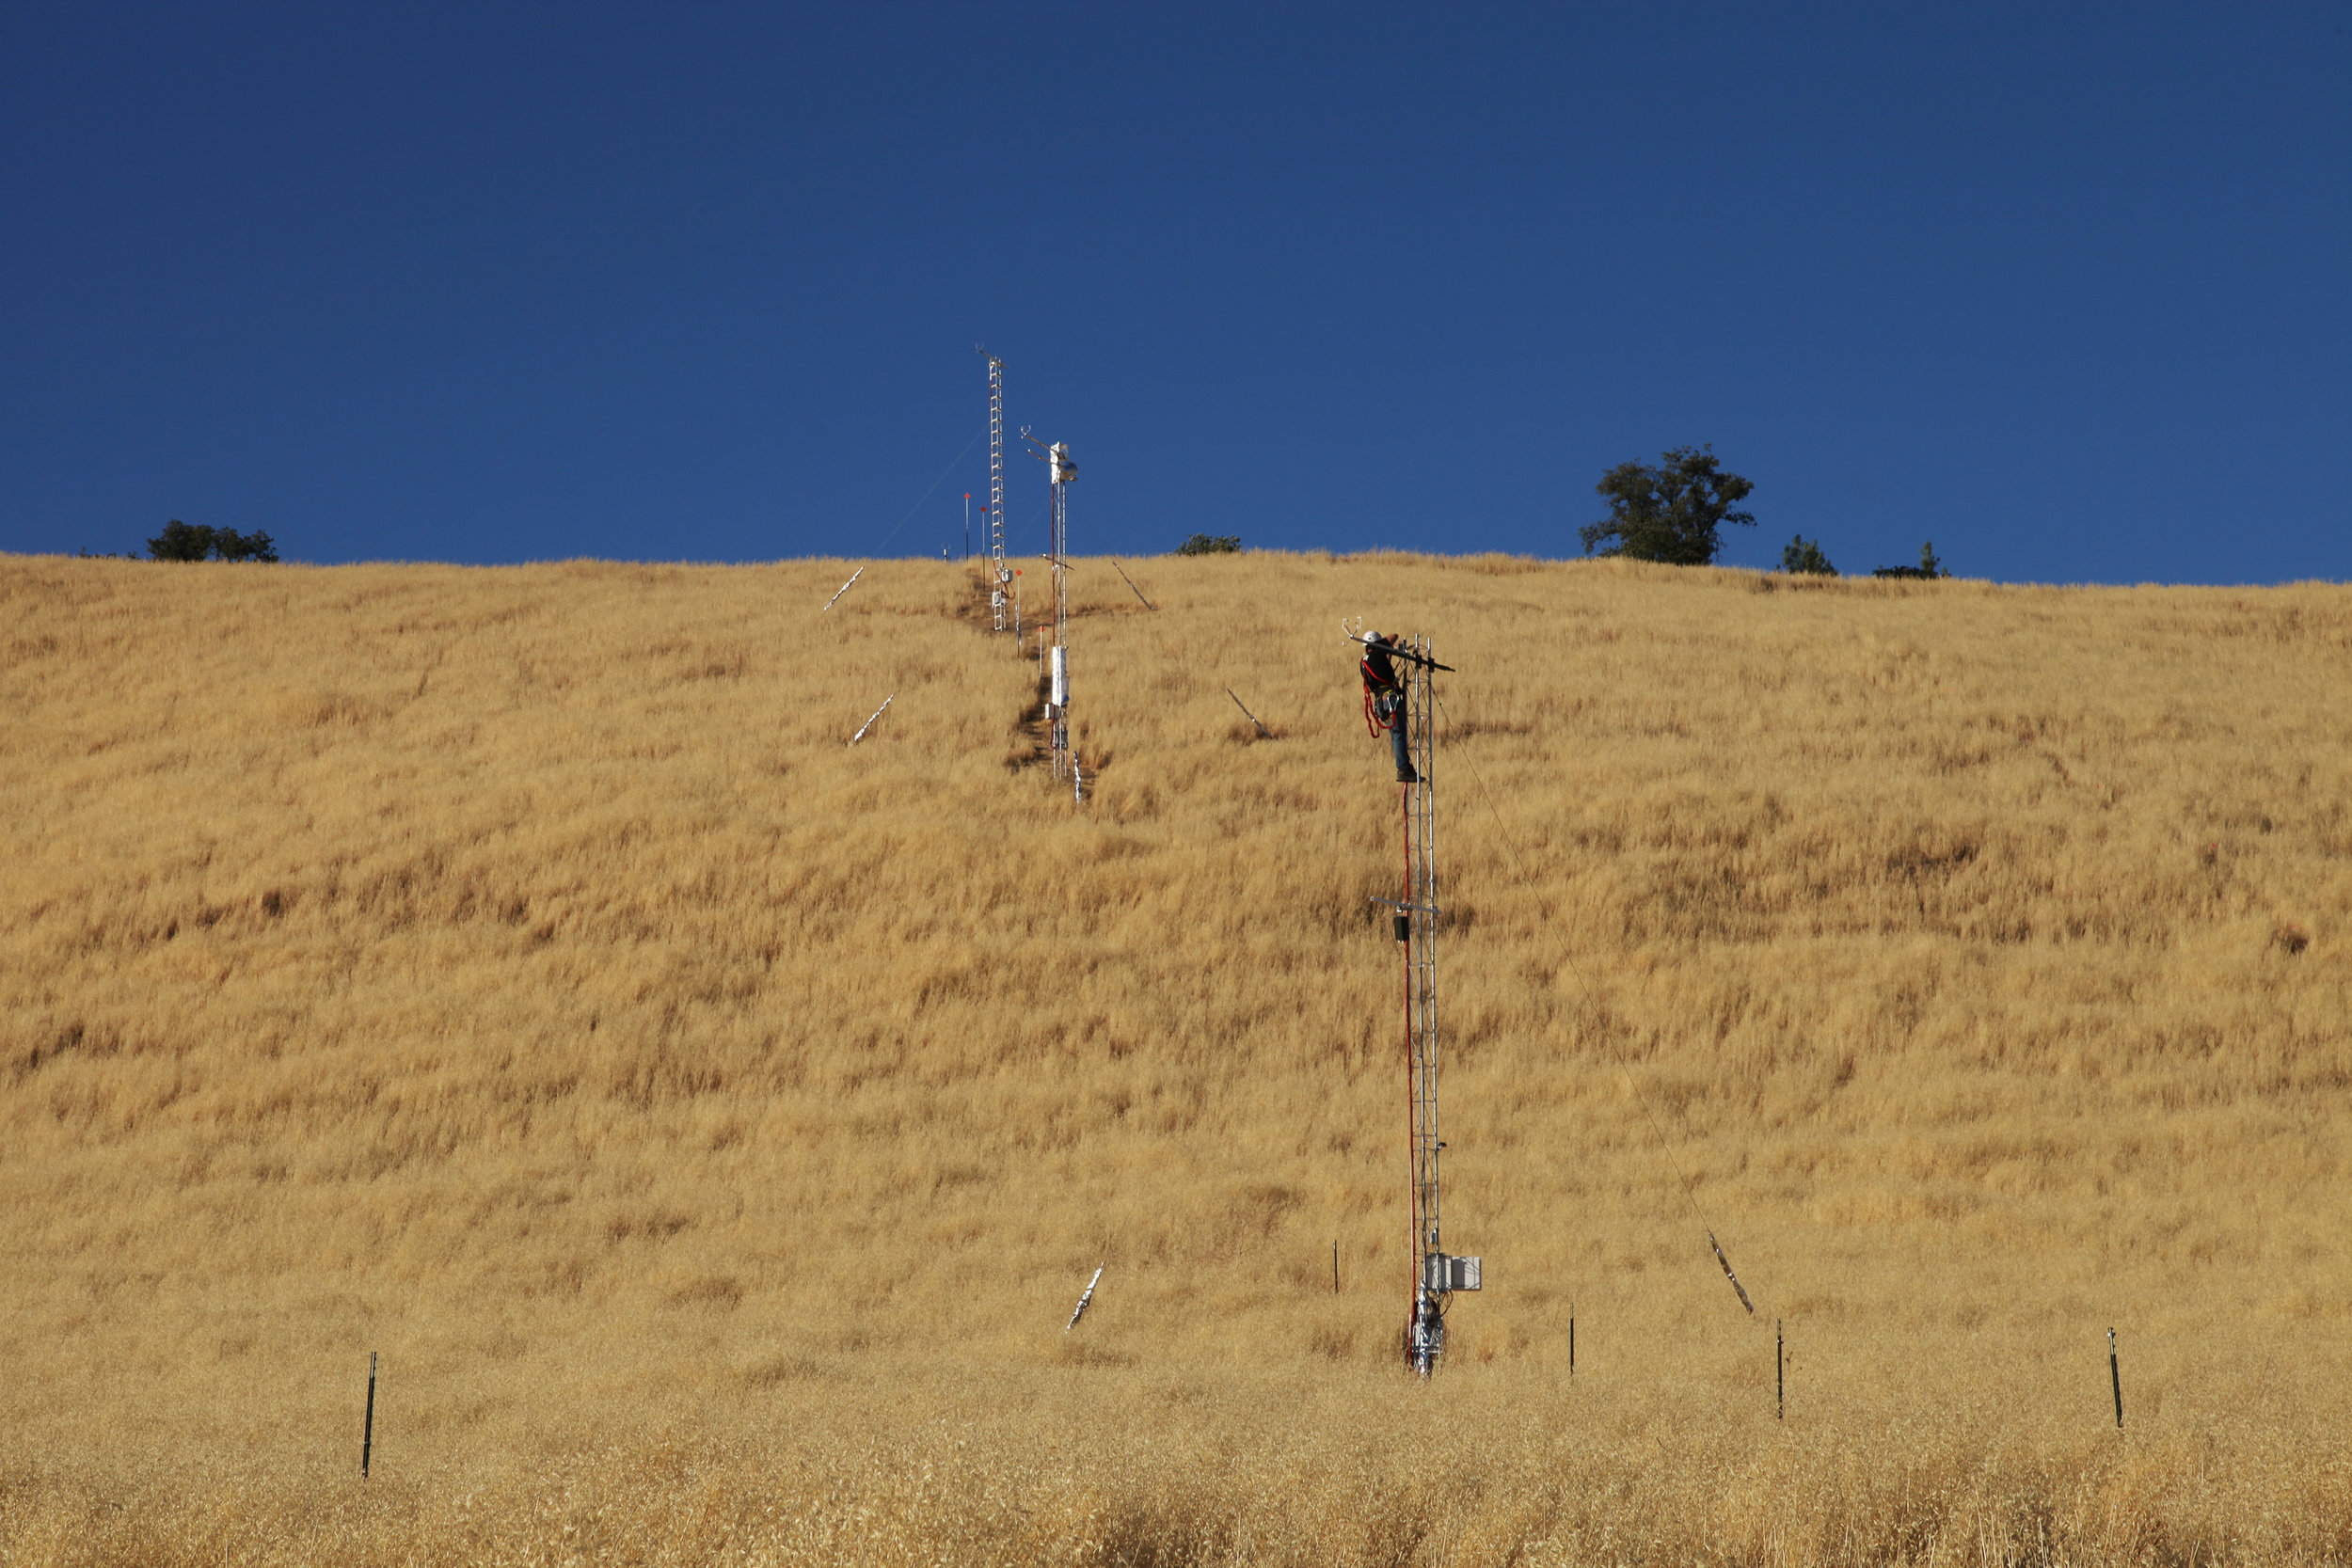 Tower preparation for slope fire experiment, 2012.